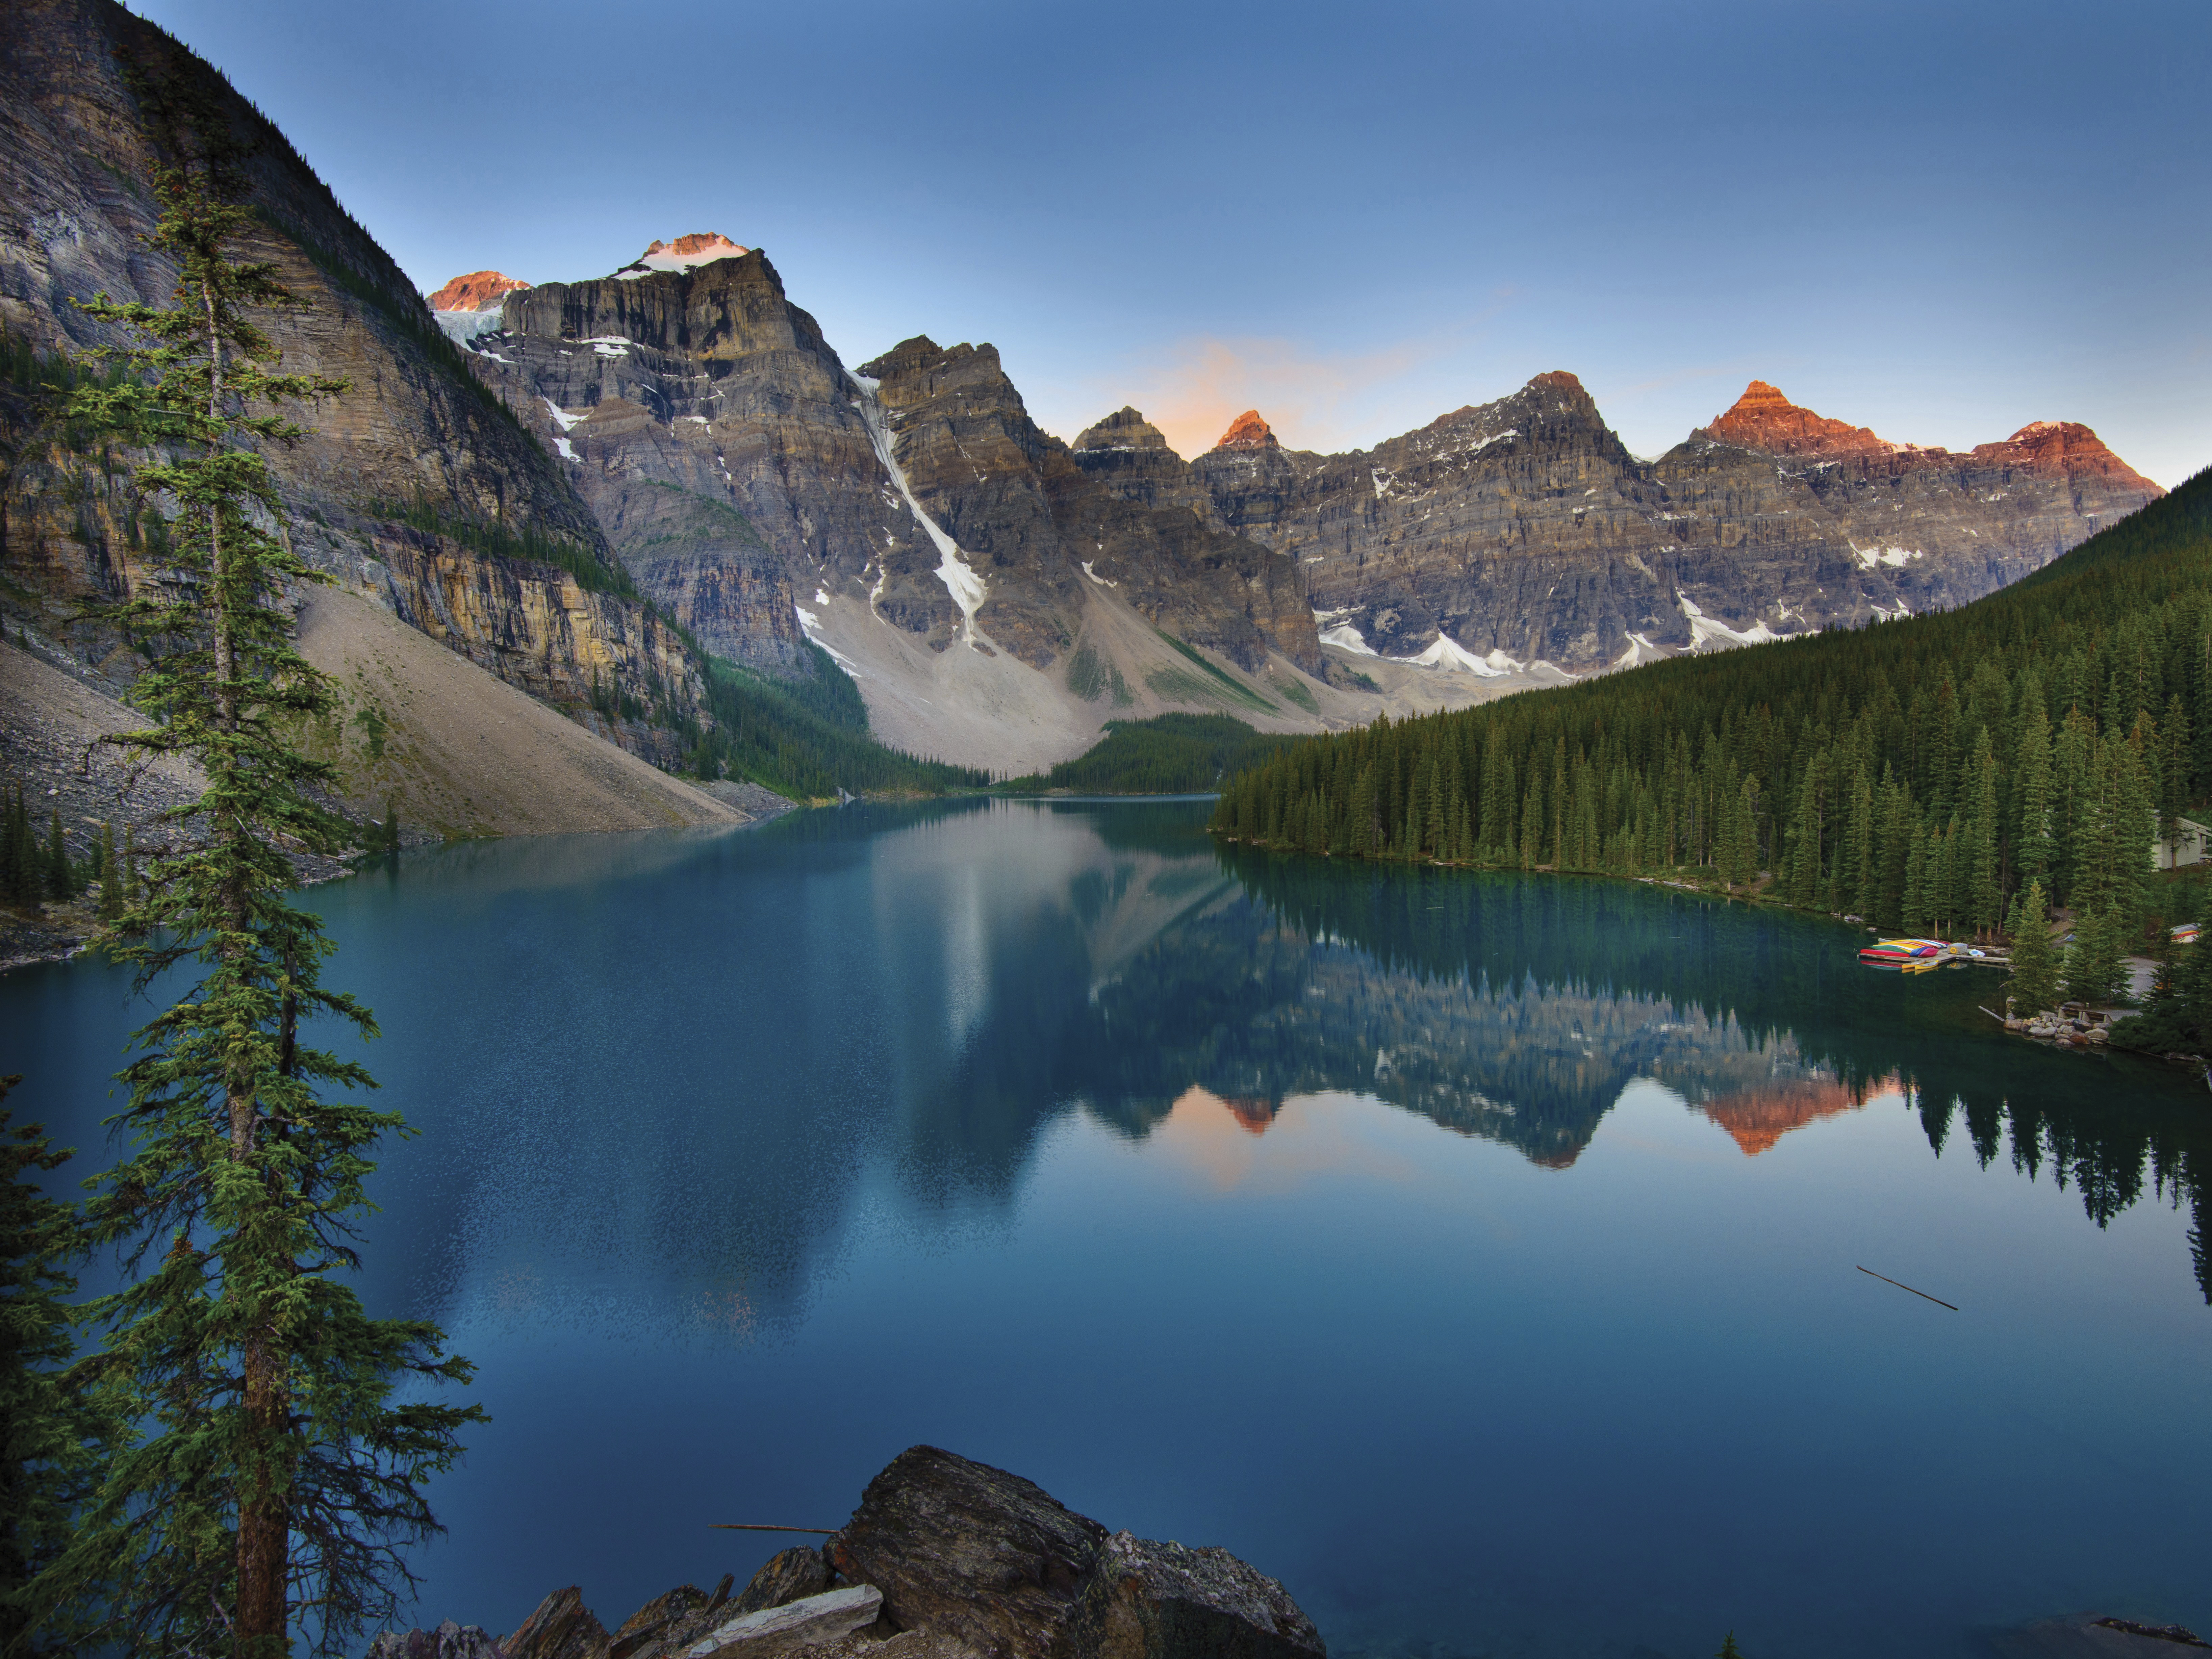 A view of Moraine Lake in Canada.